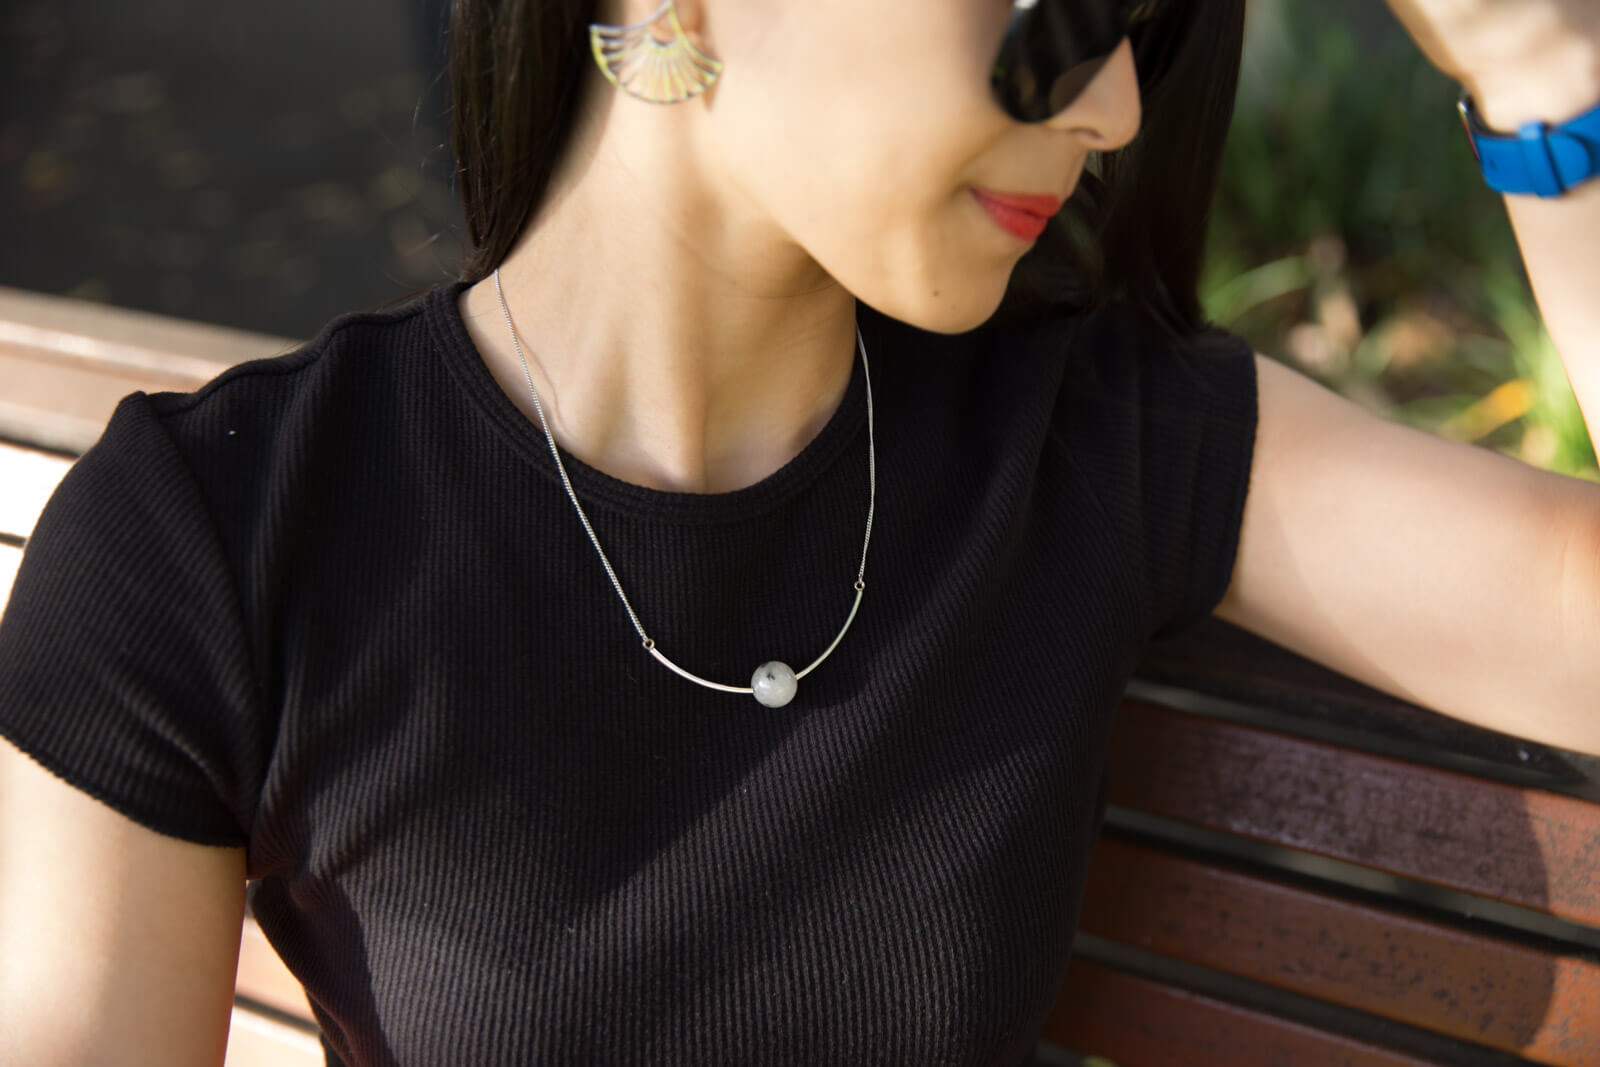 A close shot of a woman's neckline; she is wearing a black crew neck shirt and a silver necklace with a white sphere pendant in the centre.